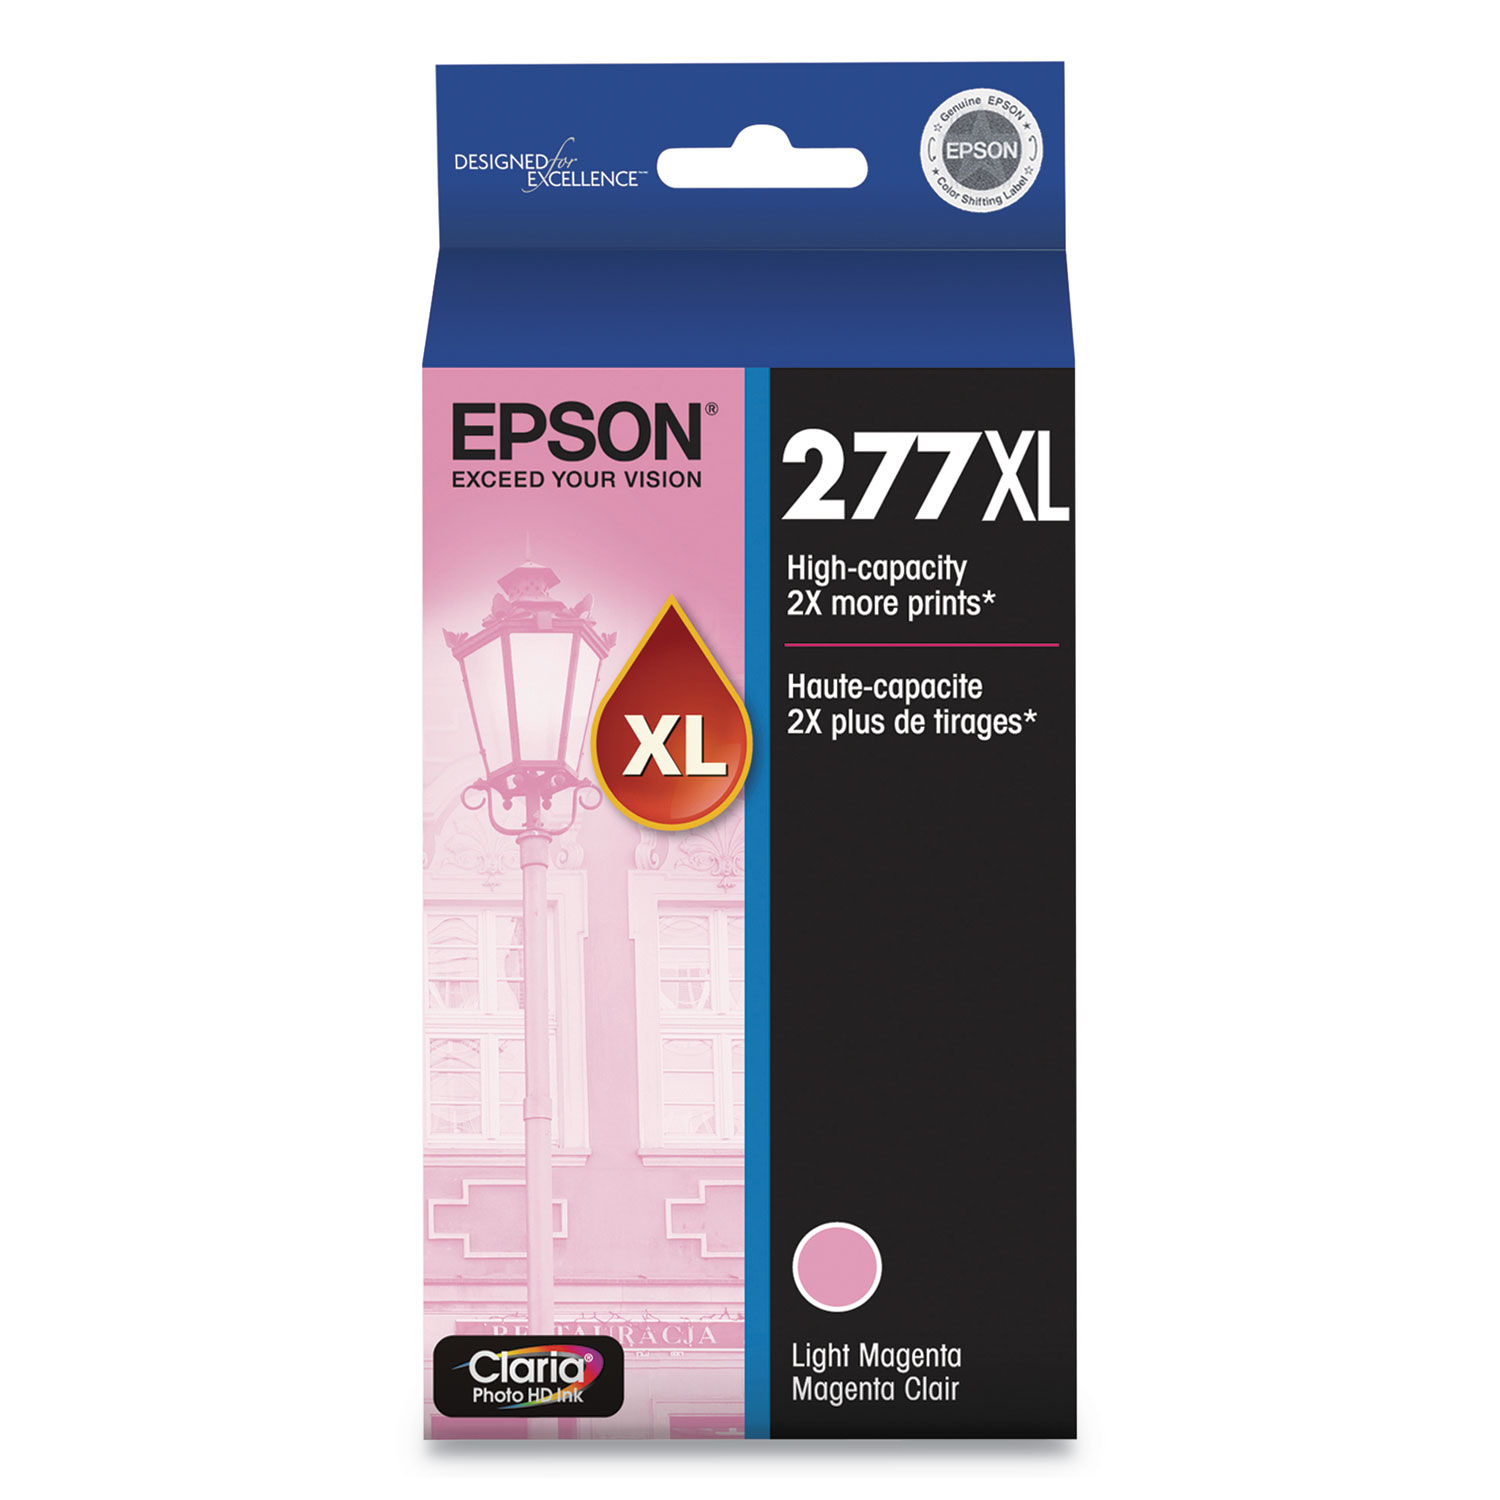 Epson T277XL620S (277XL) Claria High-Yield Ink, 740 Page-Yield, Light Magenta